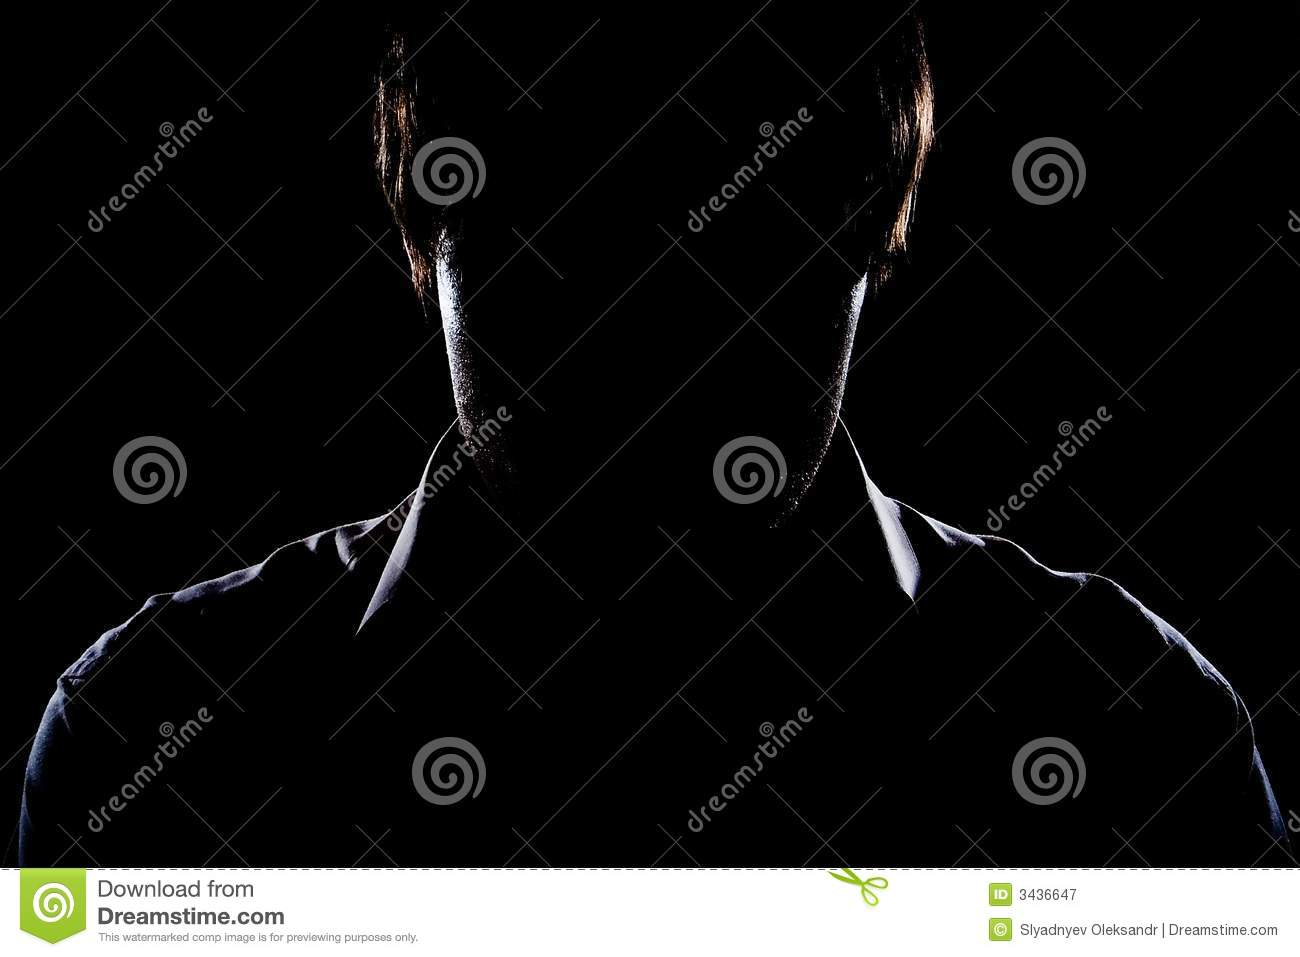 Silhouette of the man